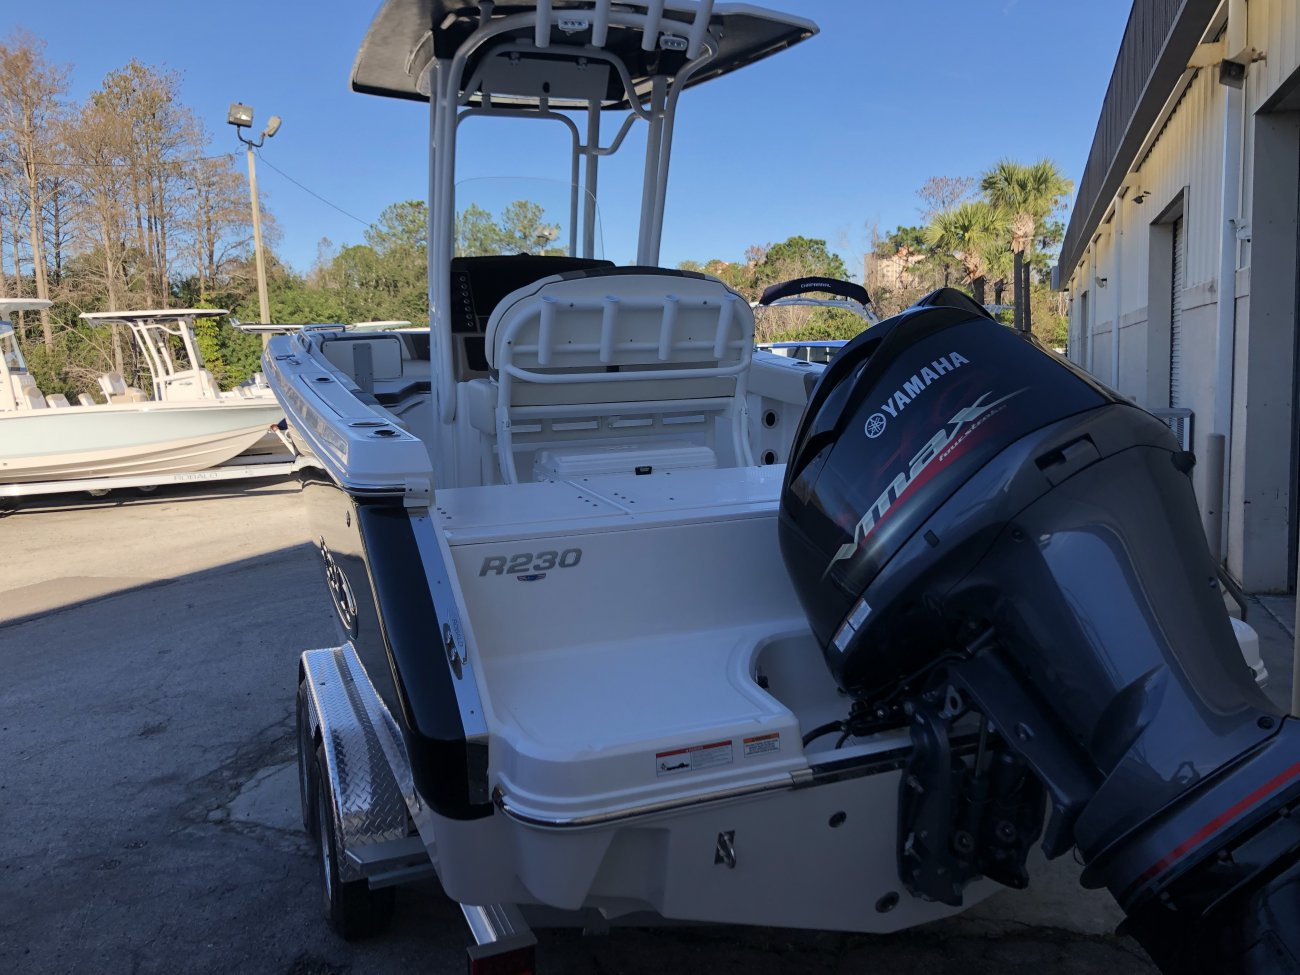 A 230 Center Console is a Power and could be classed as a Center Console,  or, just an overall Great Boat!